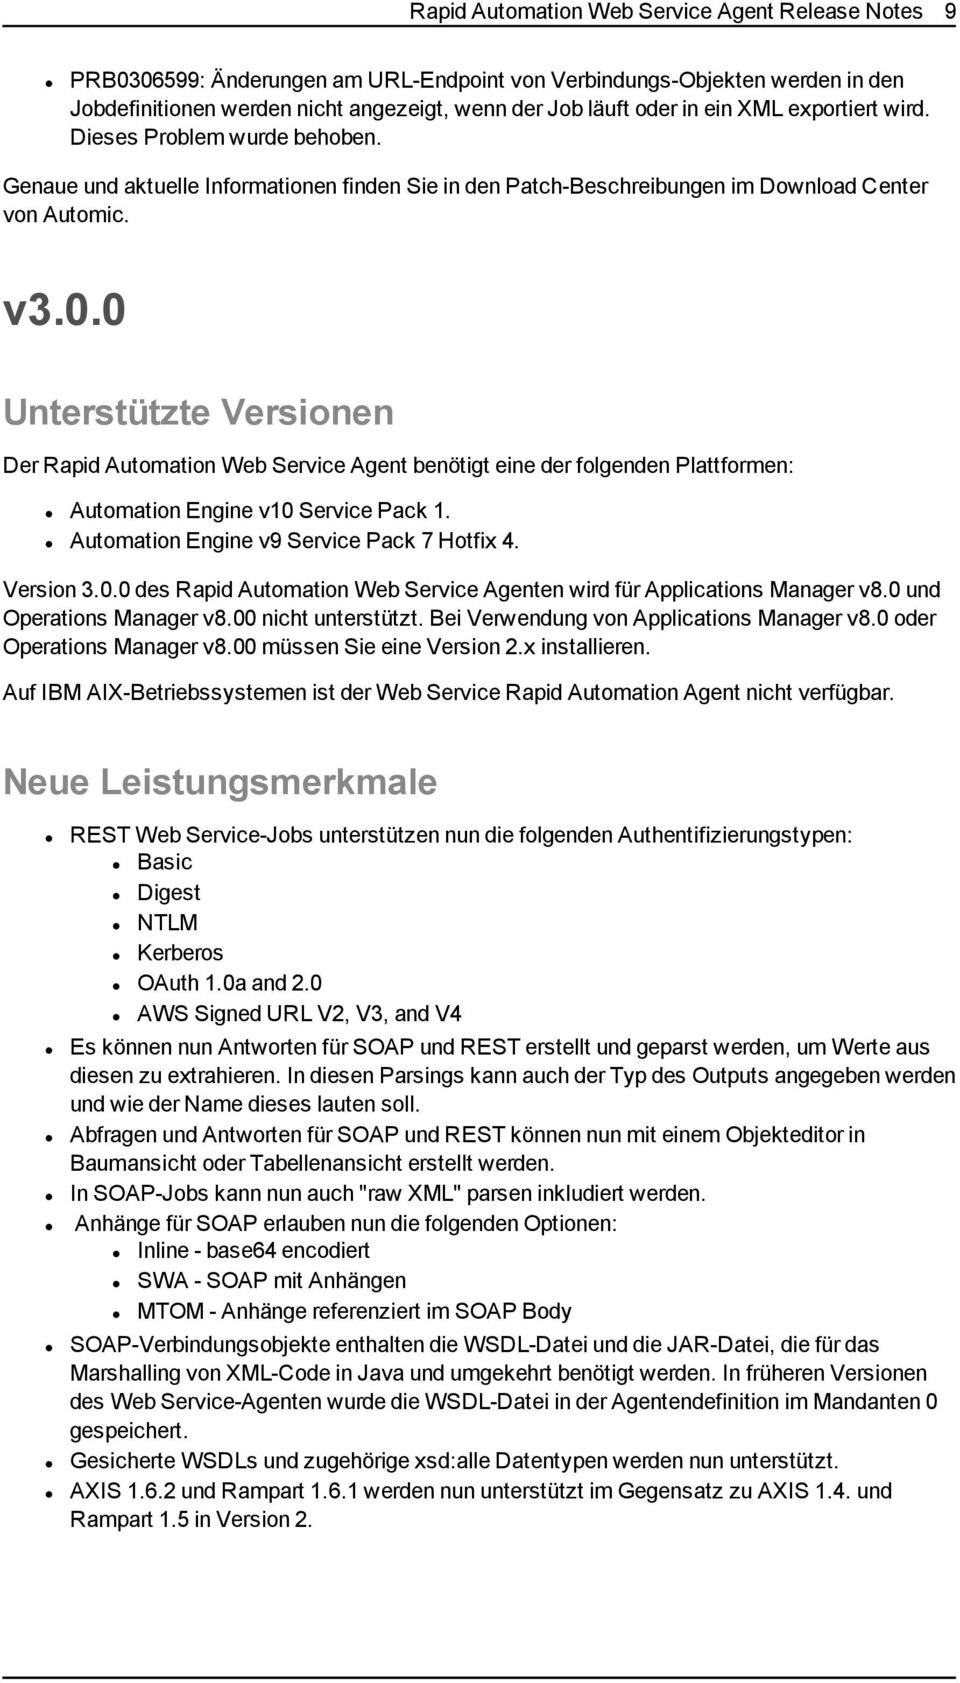 0 Der Rapid Automation Web Service Agent benötigt eine der folgenden Plattformen: Automation Engine v10 Service Pack 1. Automation Engine v9 Service Pack 7 Hotfix 4. Version 3.0.0 des Rapid Automation Web Service Agenten wird für Applications Manager v8.